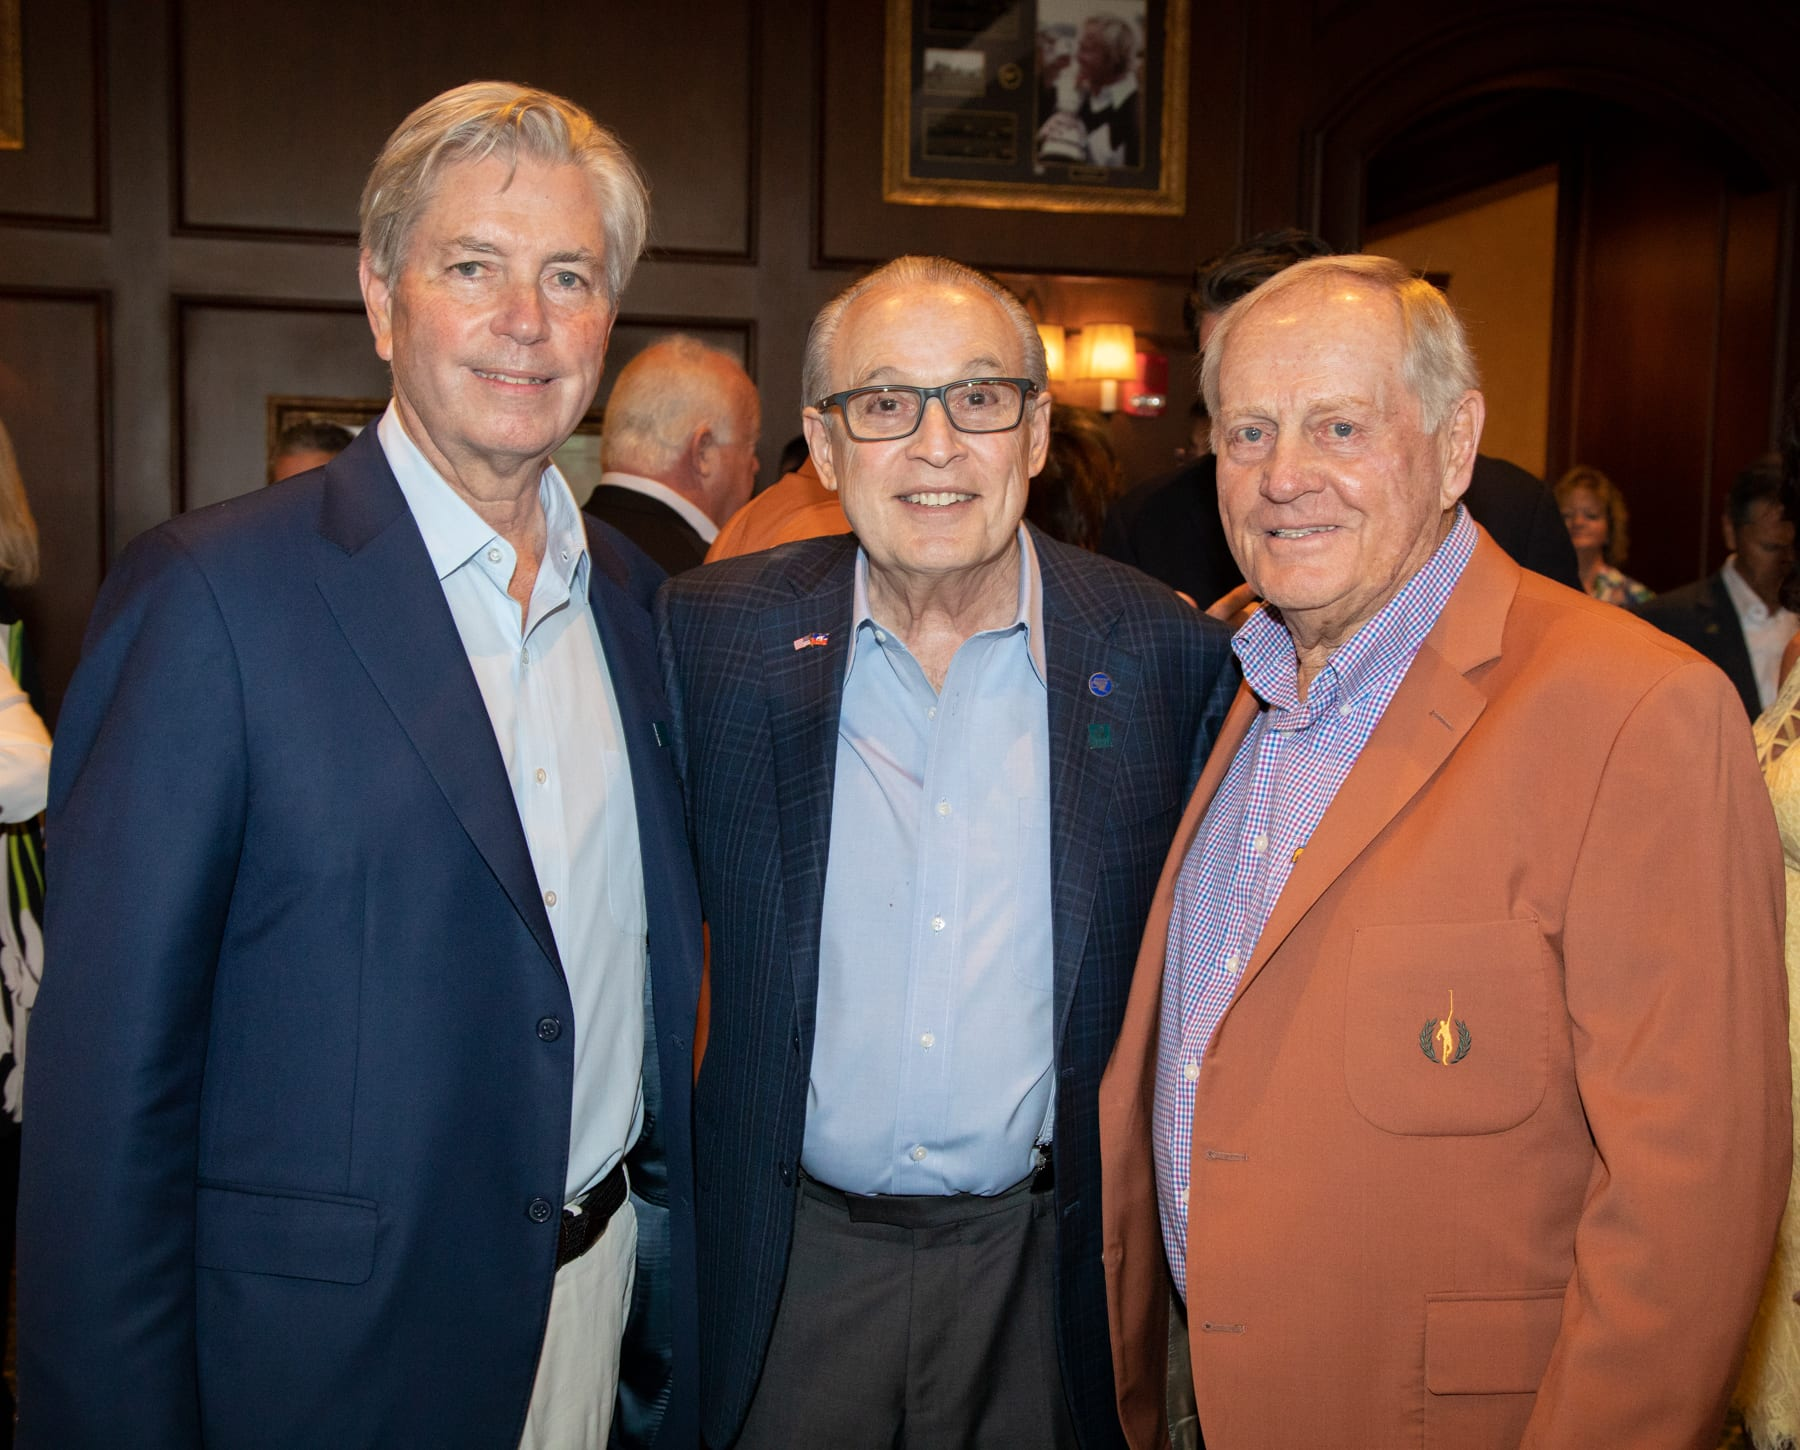 Mark Dalton and Dr. Barth Green with Jack Nicklaus